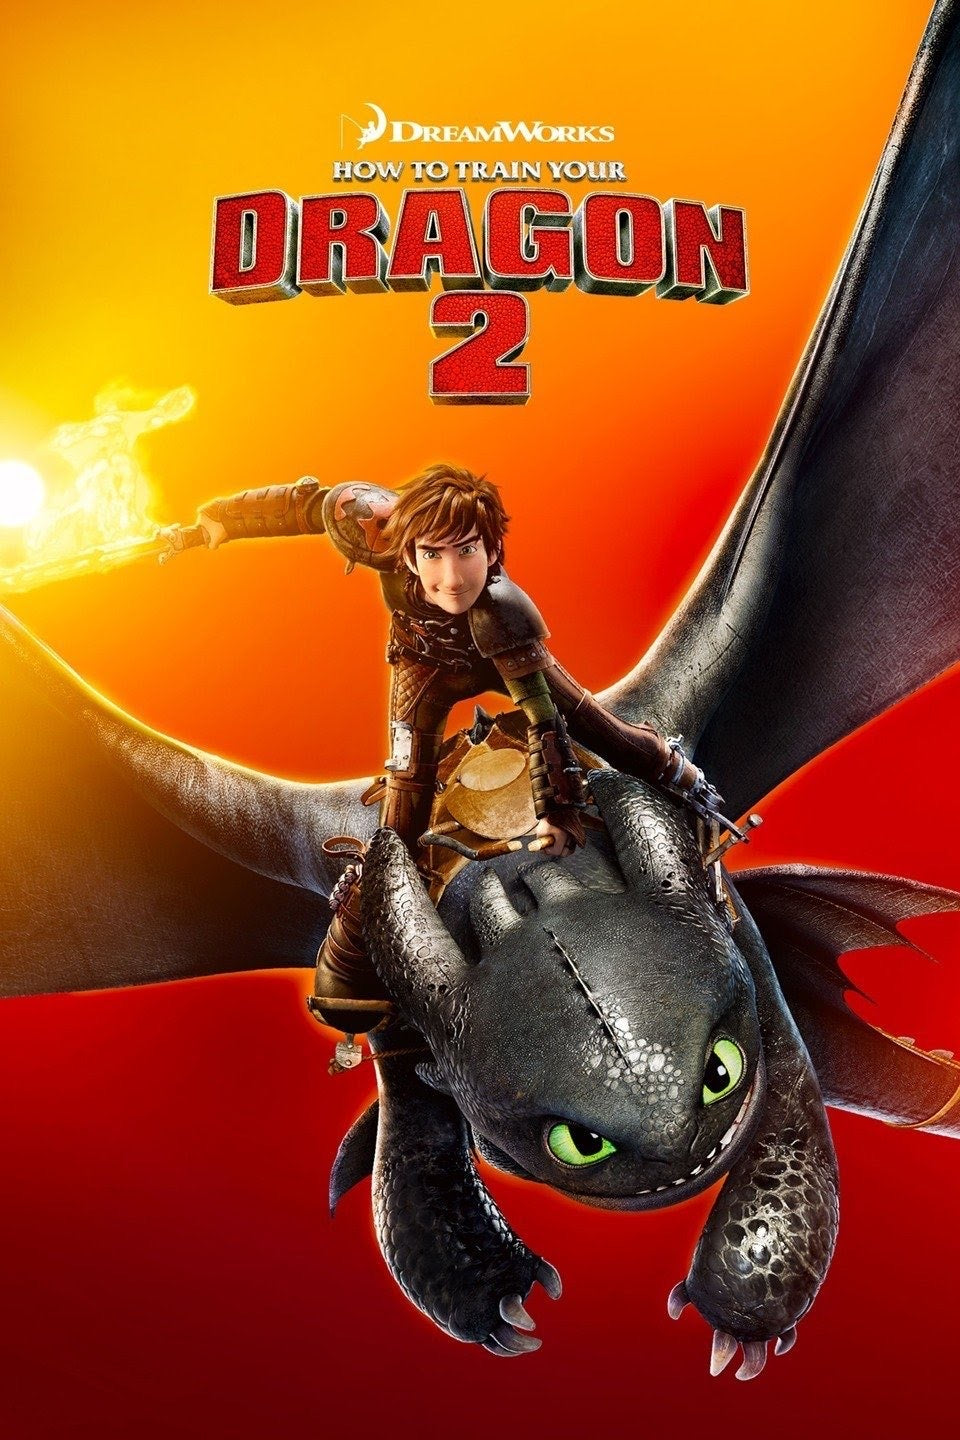 How To Train Your Dragon 2 (2014) Vudu or Movies Anywhere HD code